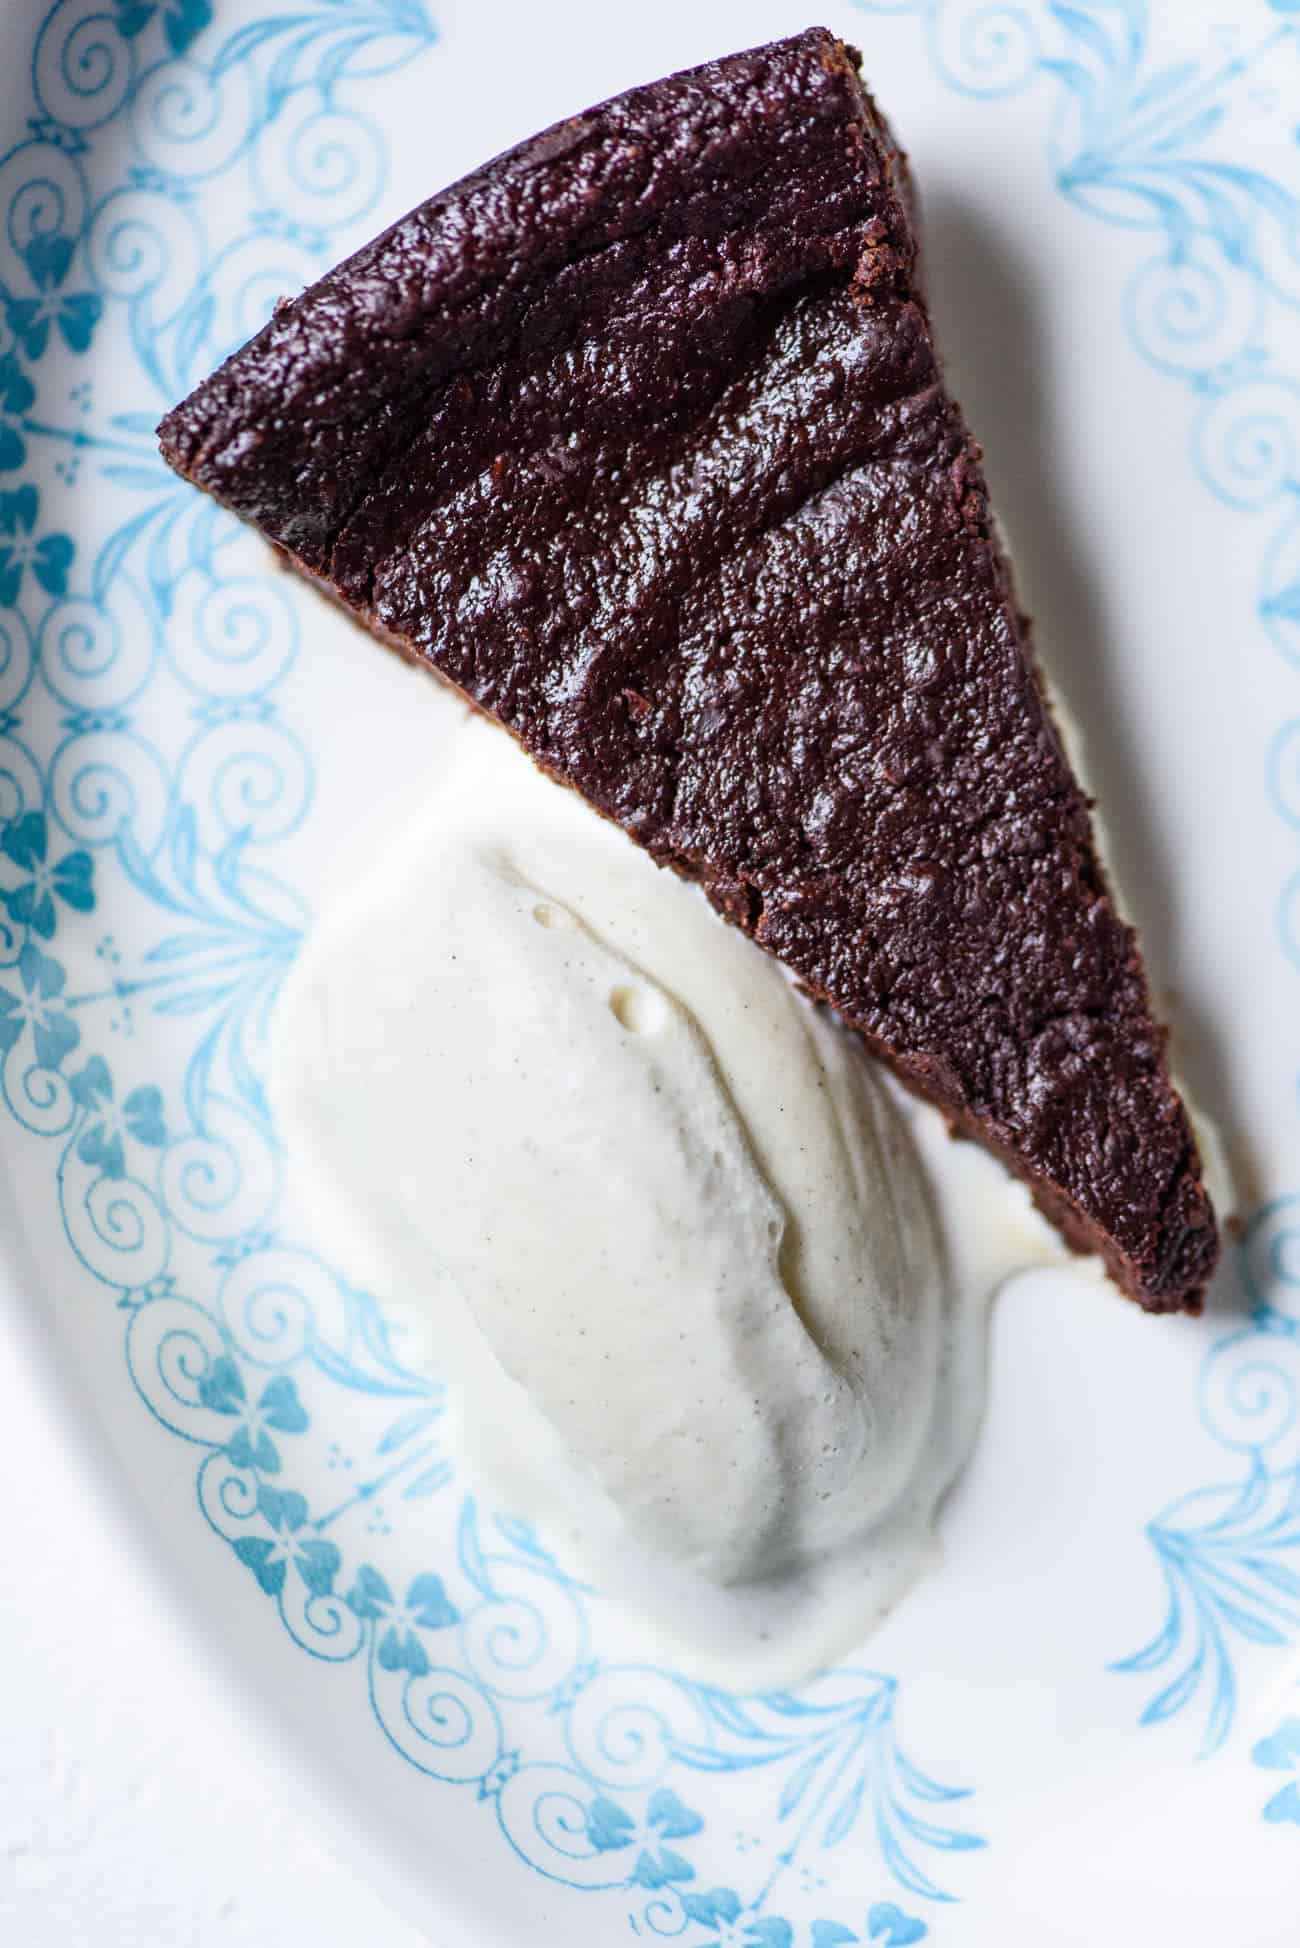 Slice of flourless chocolate cake with scoop of vanilla ice cream